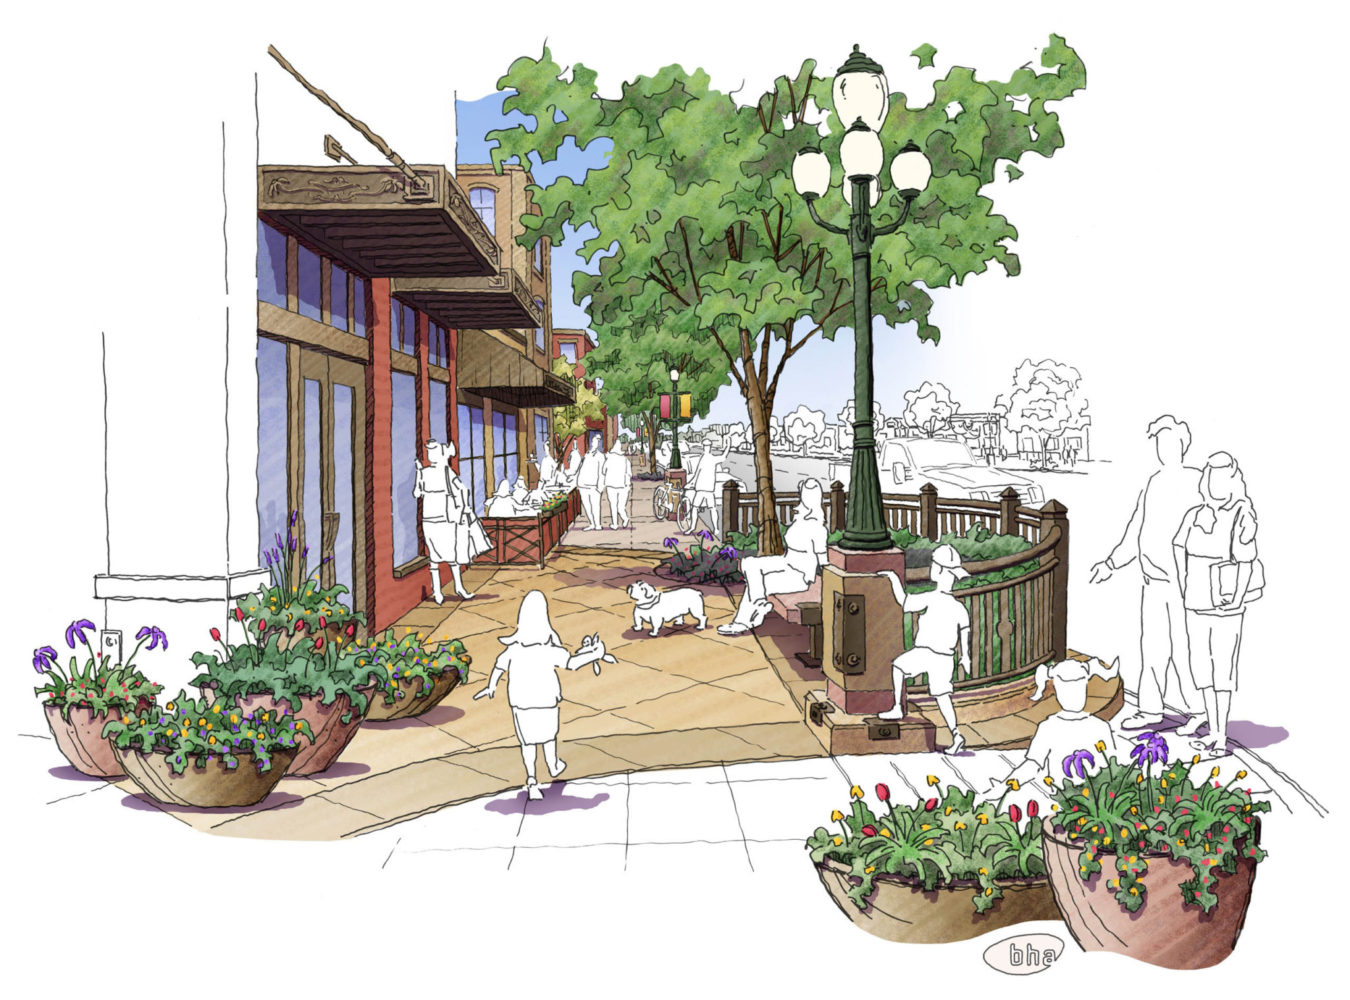 Greeley 8th Ave. Visioning - Design Concept